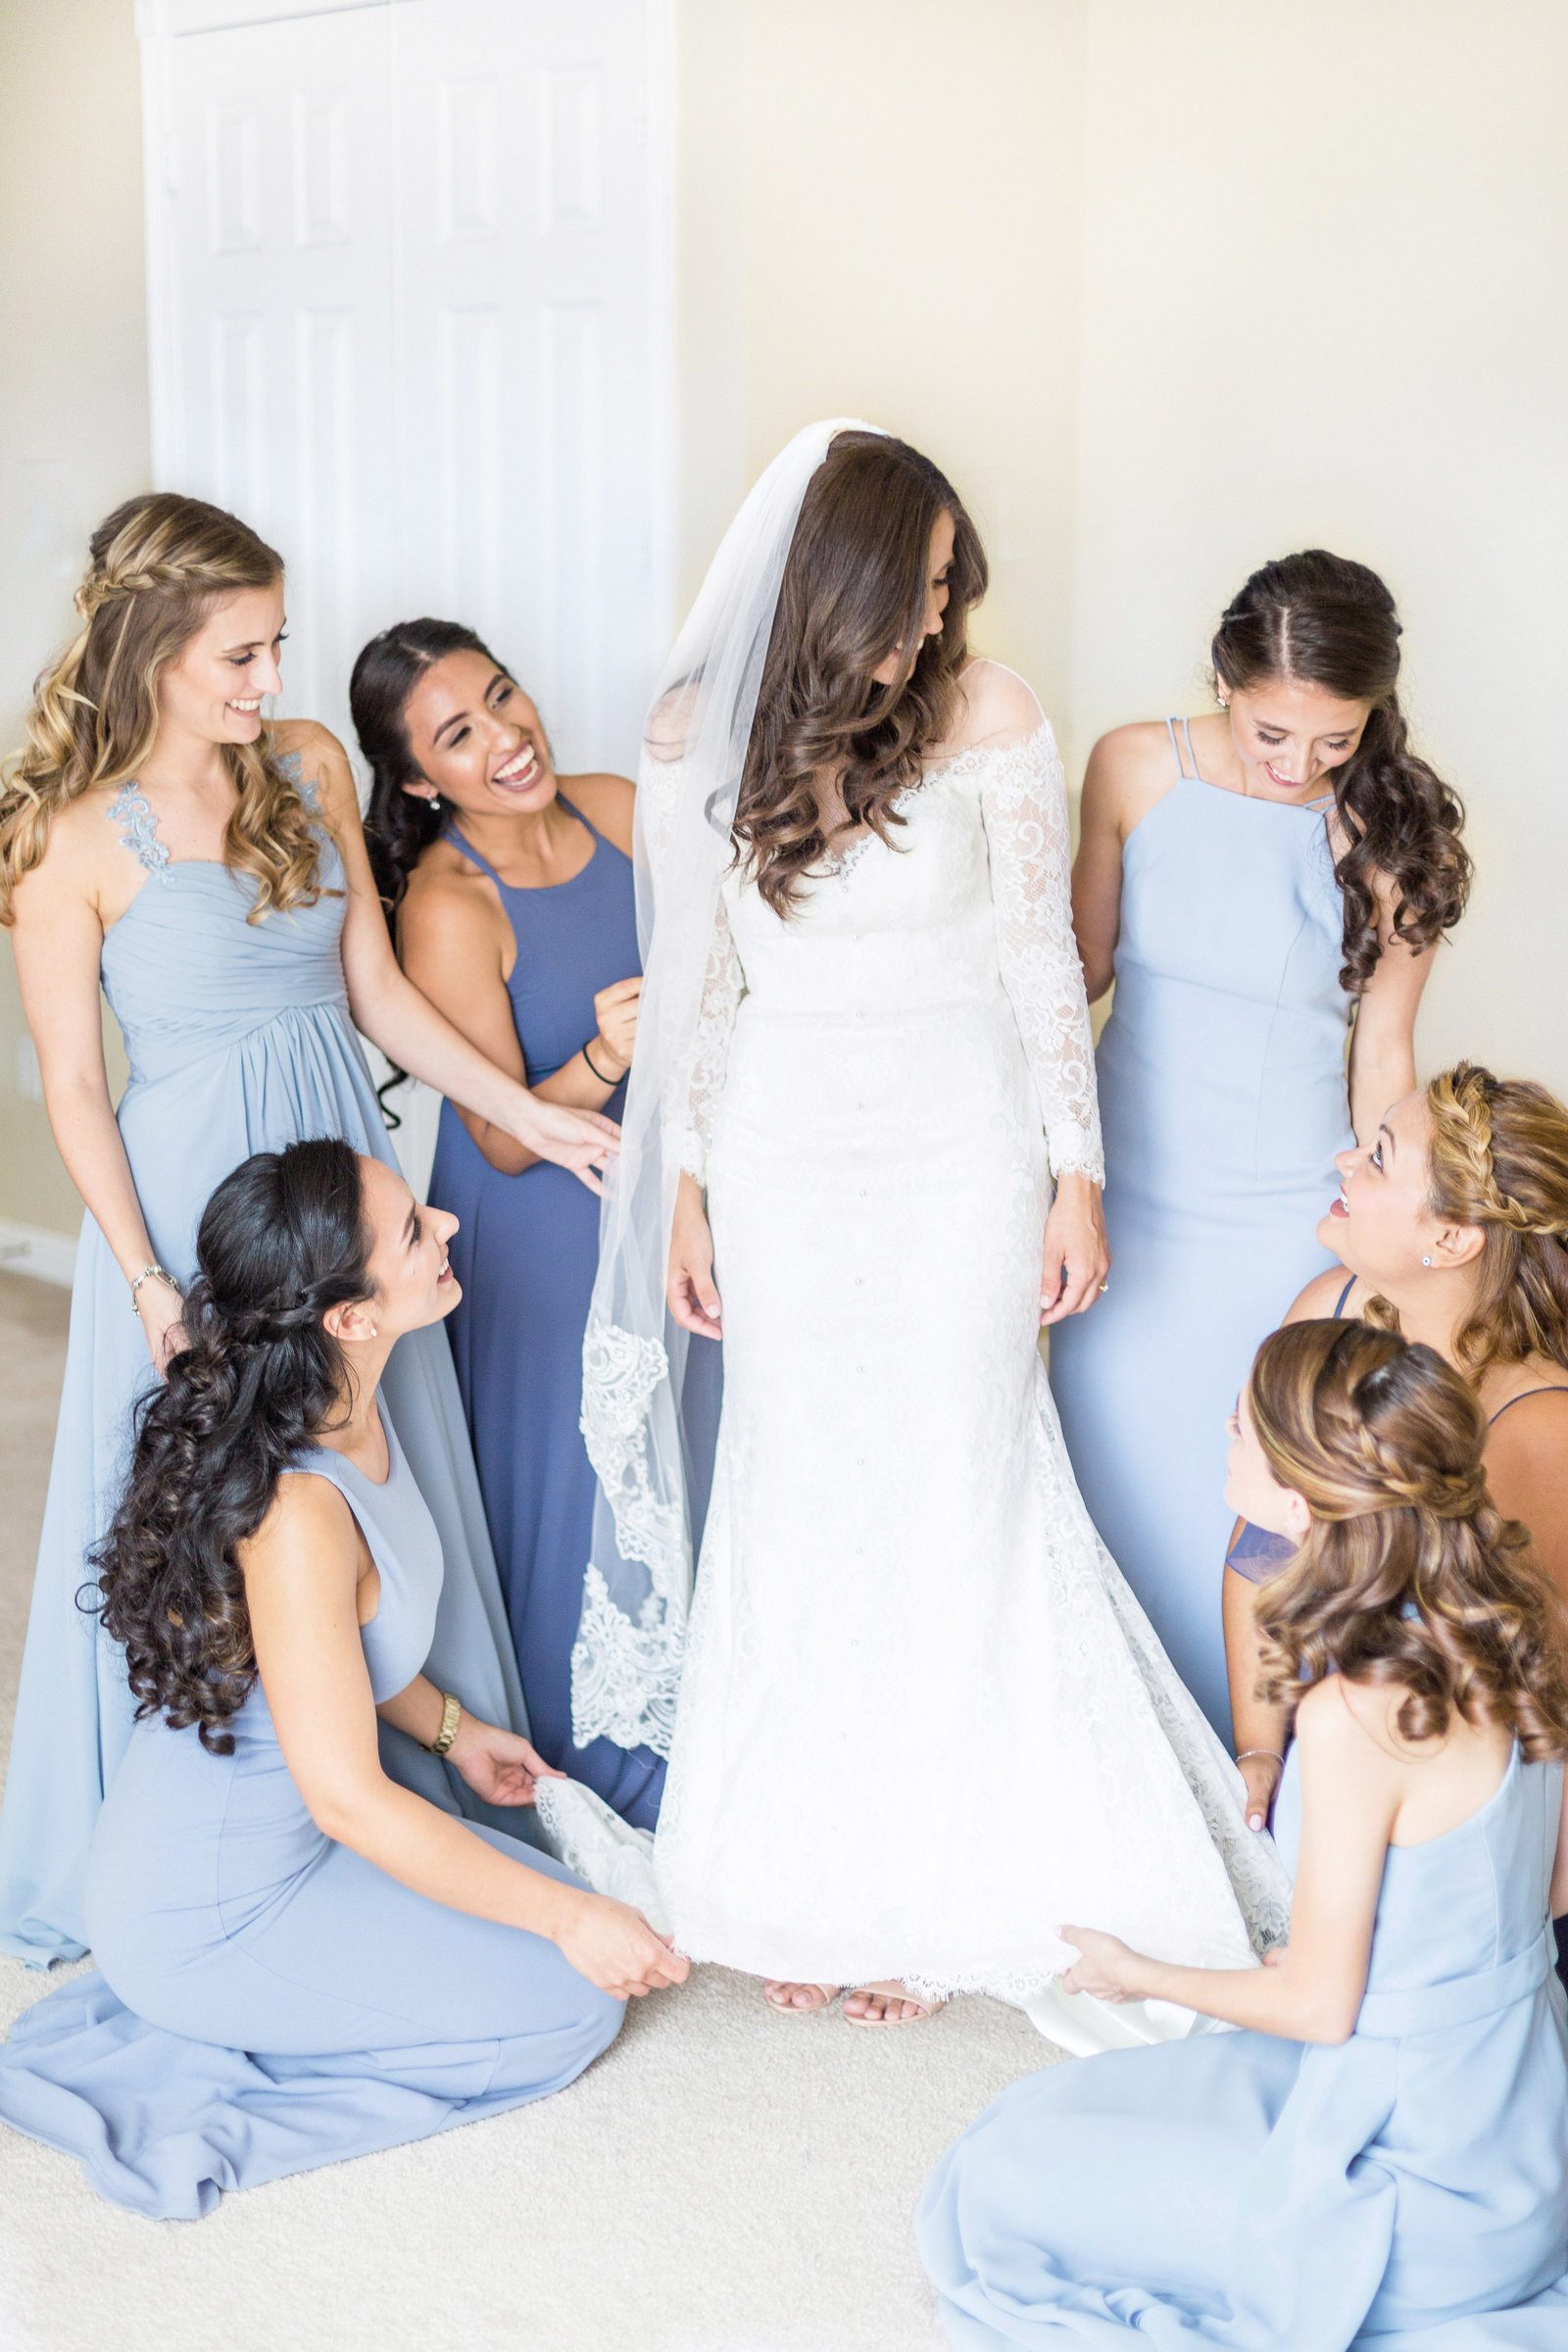 Orlando-Florida-estate-wedding-Bridesmaids-chris-sosa-photography-7